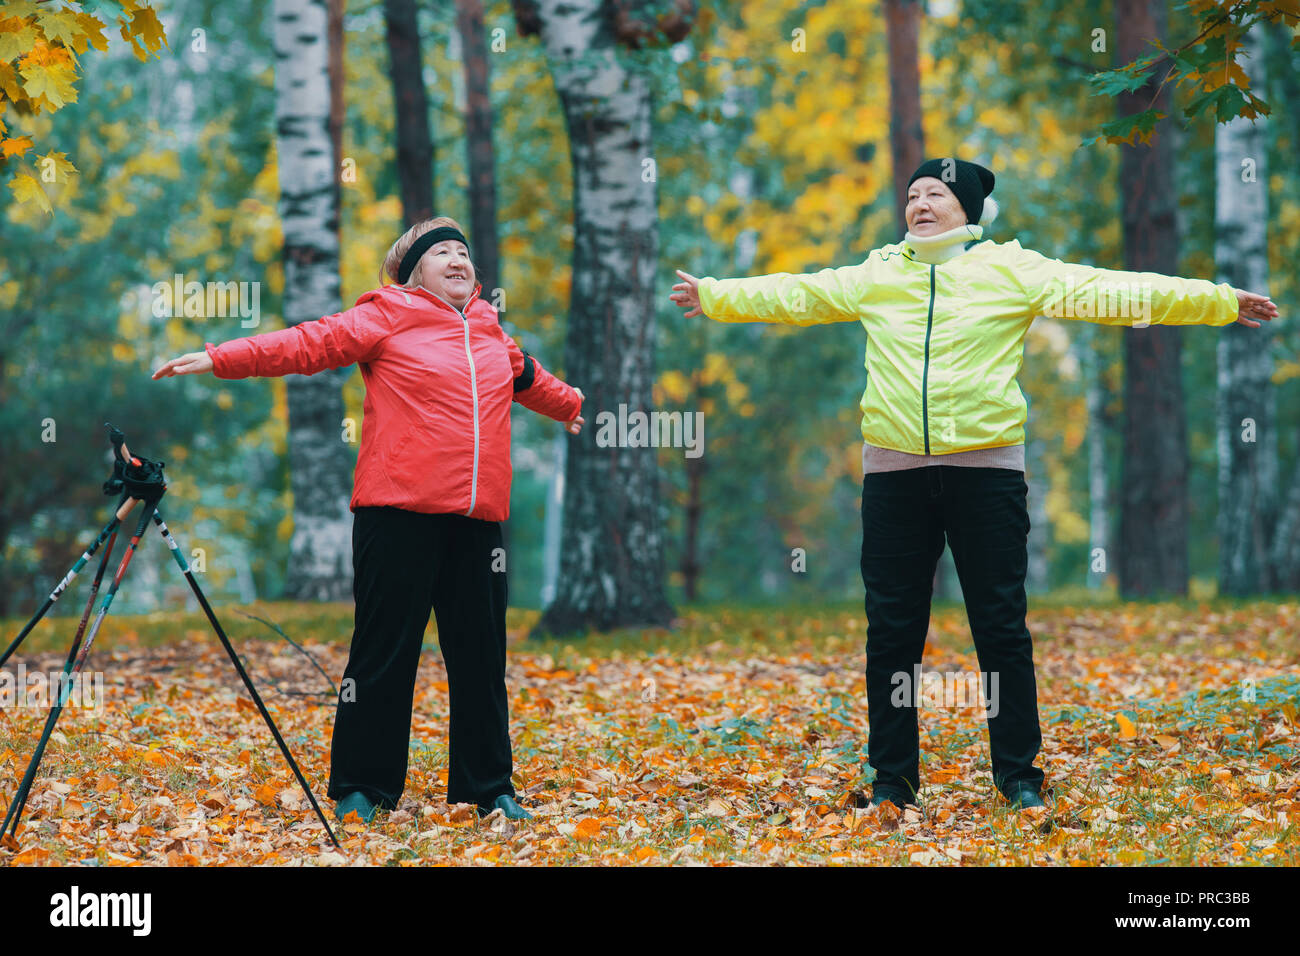 A mature woman performing warm-up in an autumn park after a scandinavian walk - Stock Image